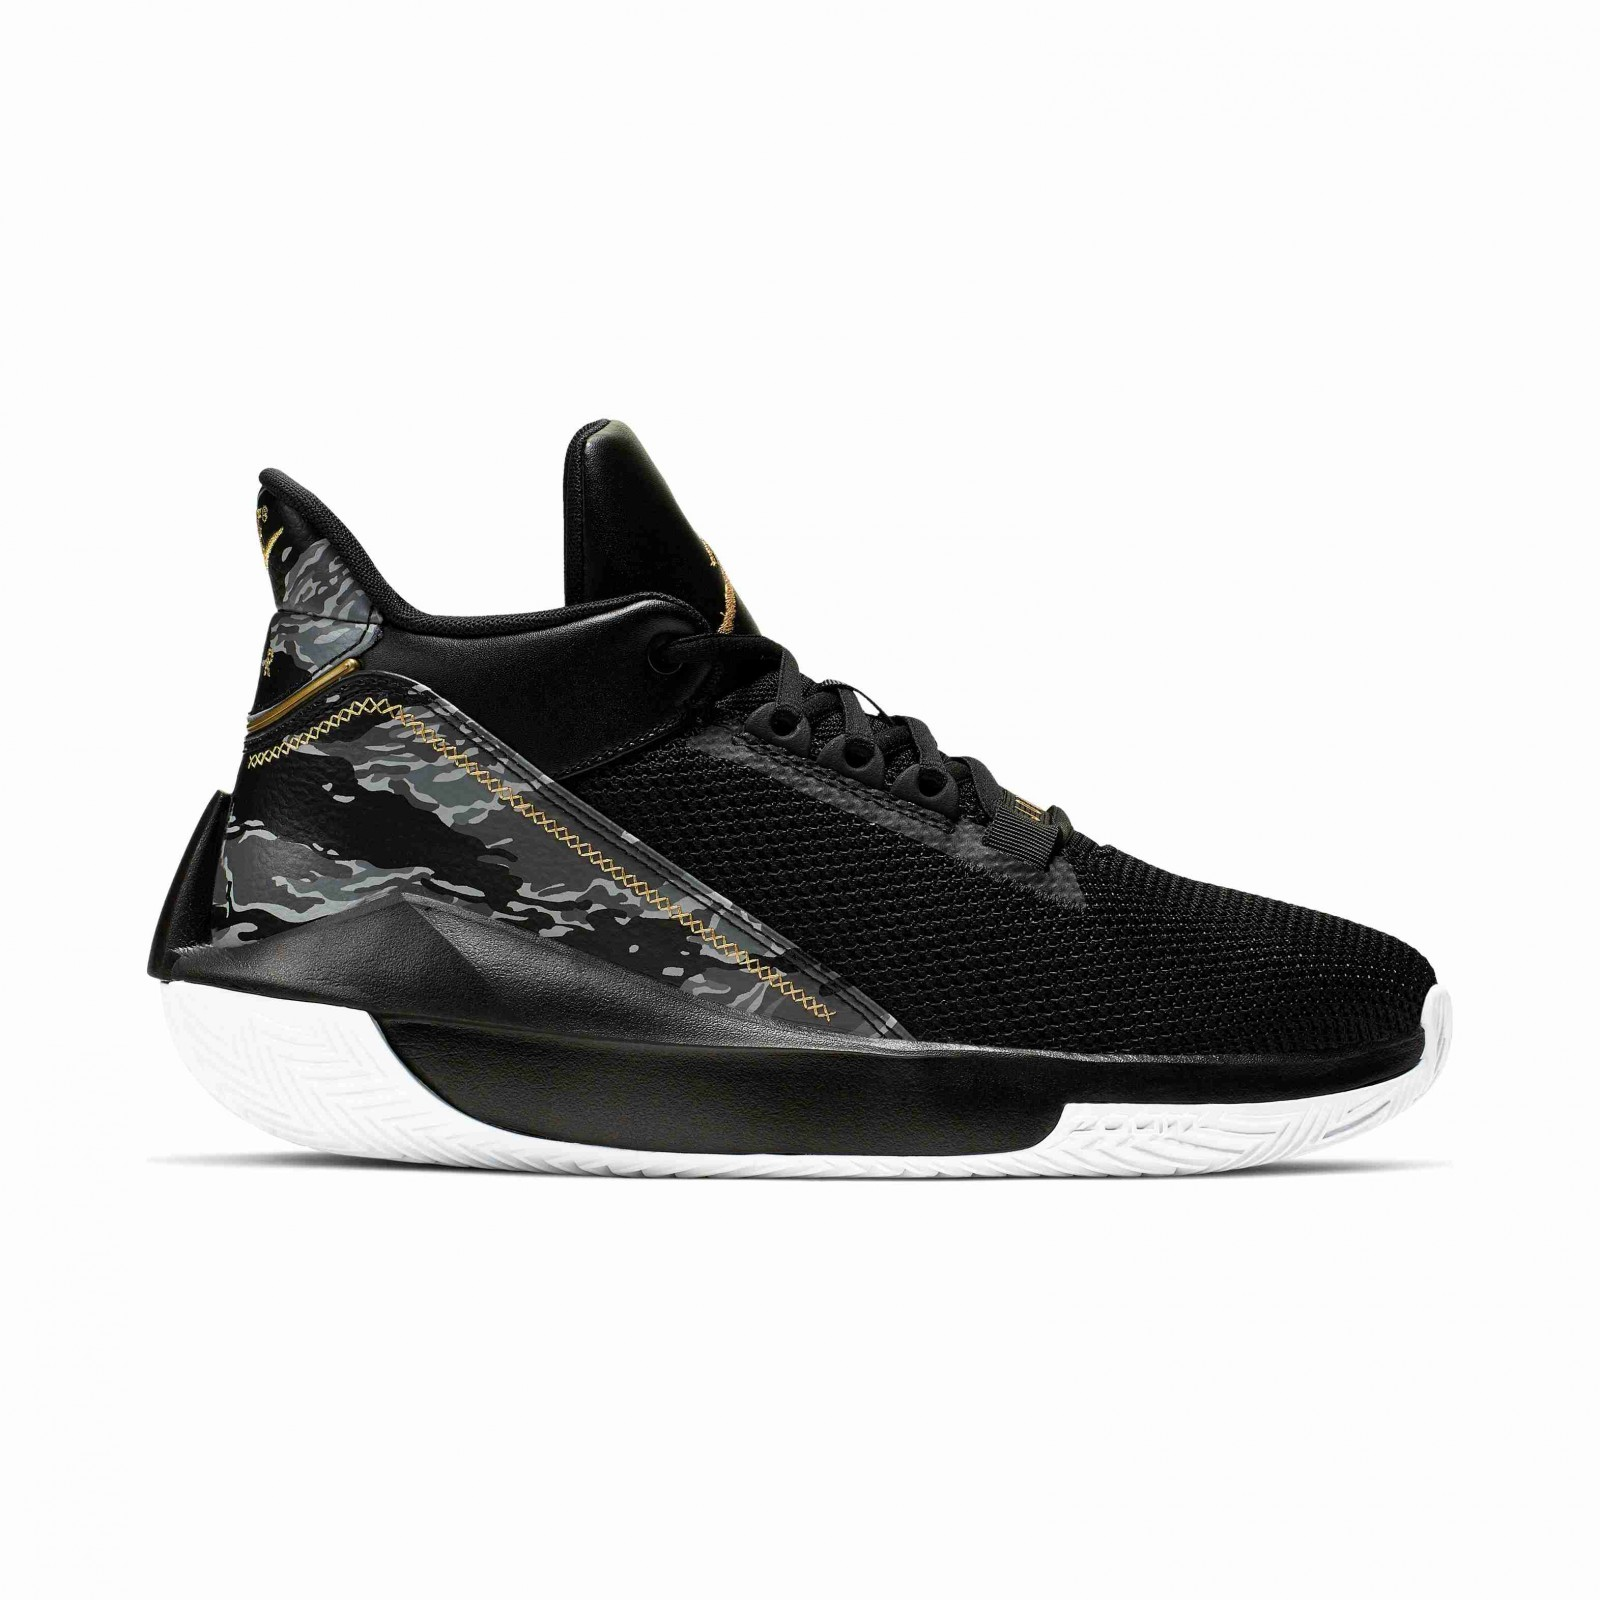 a798449057543 Jordan 2X3 BLACK/METALLIC GOLD-WHITE - Glami.sk